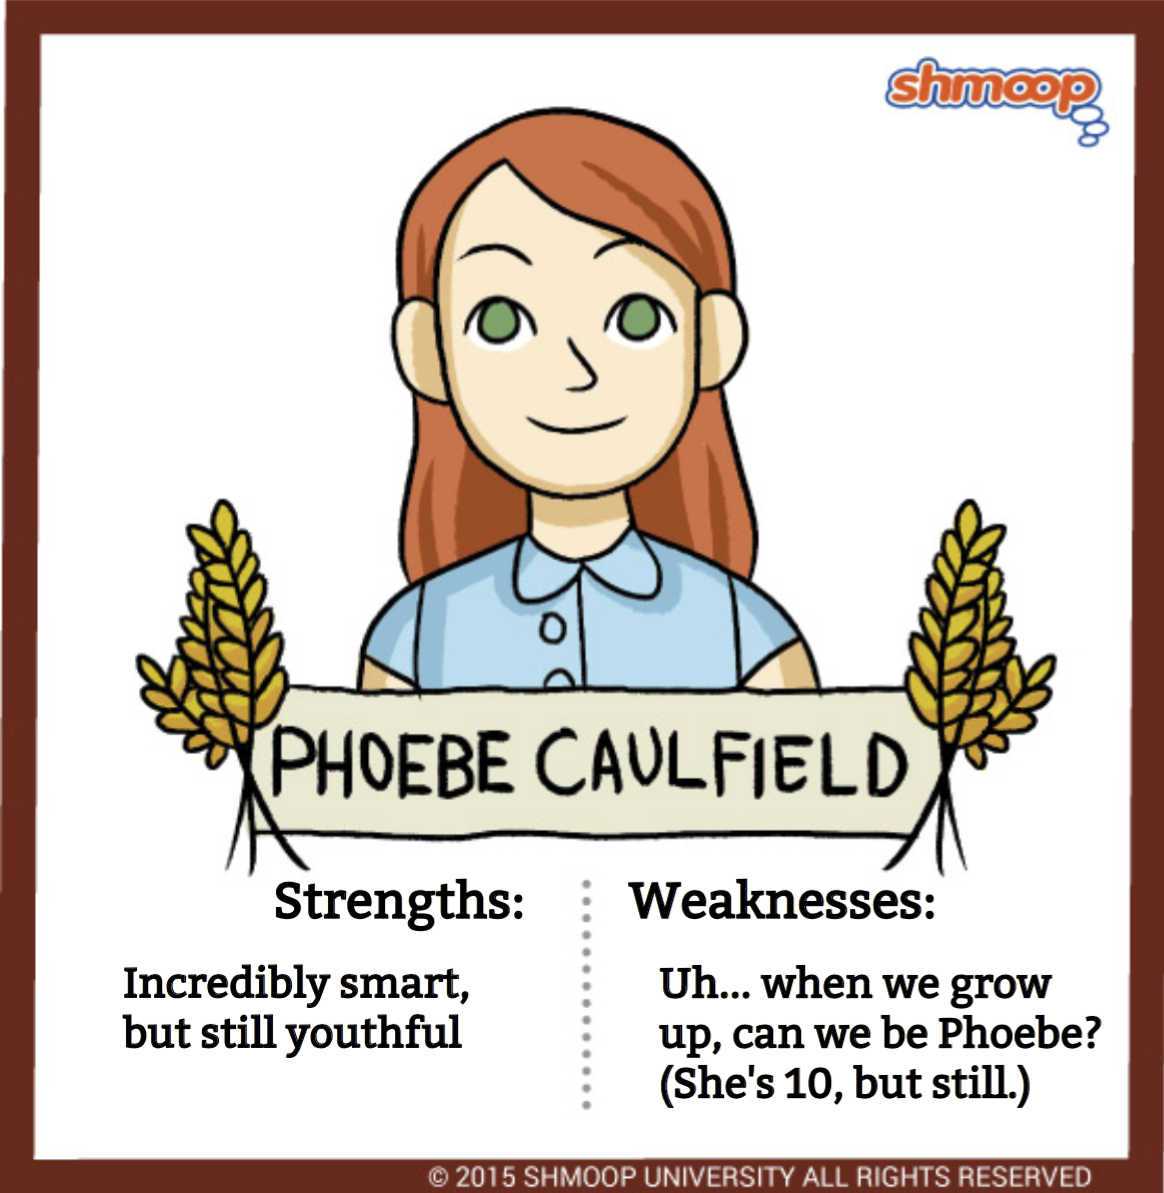 Phoebe Caulfield In The Catcher In The Rye Character Analysis